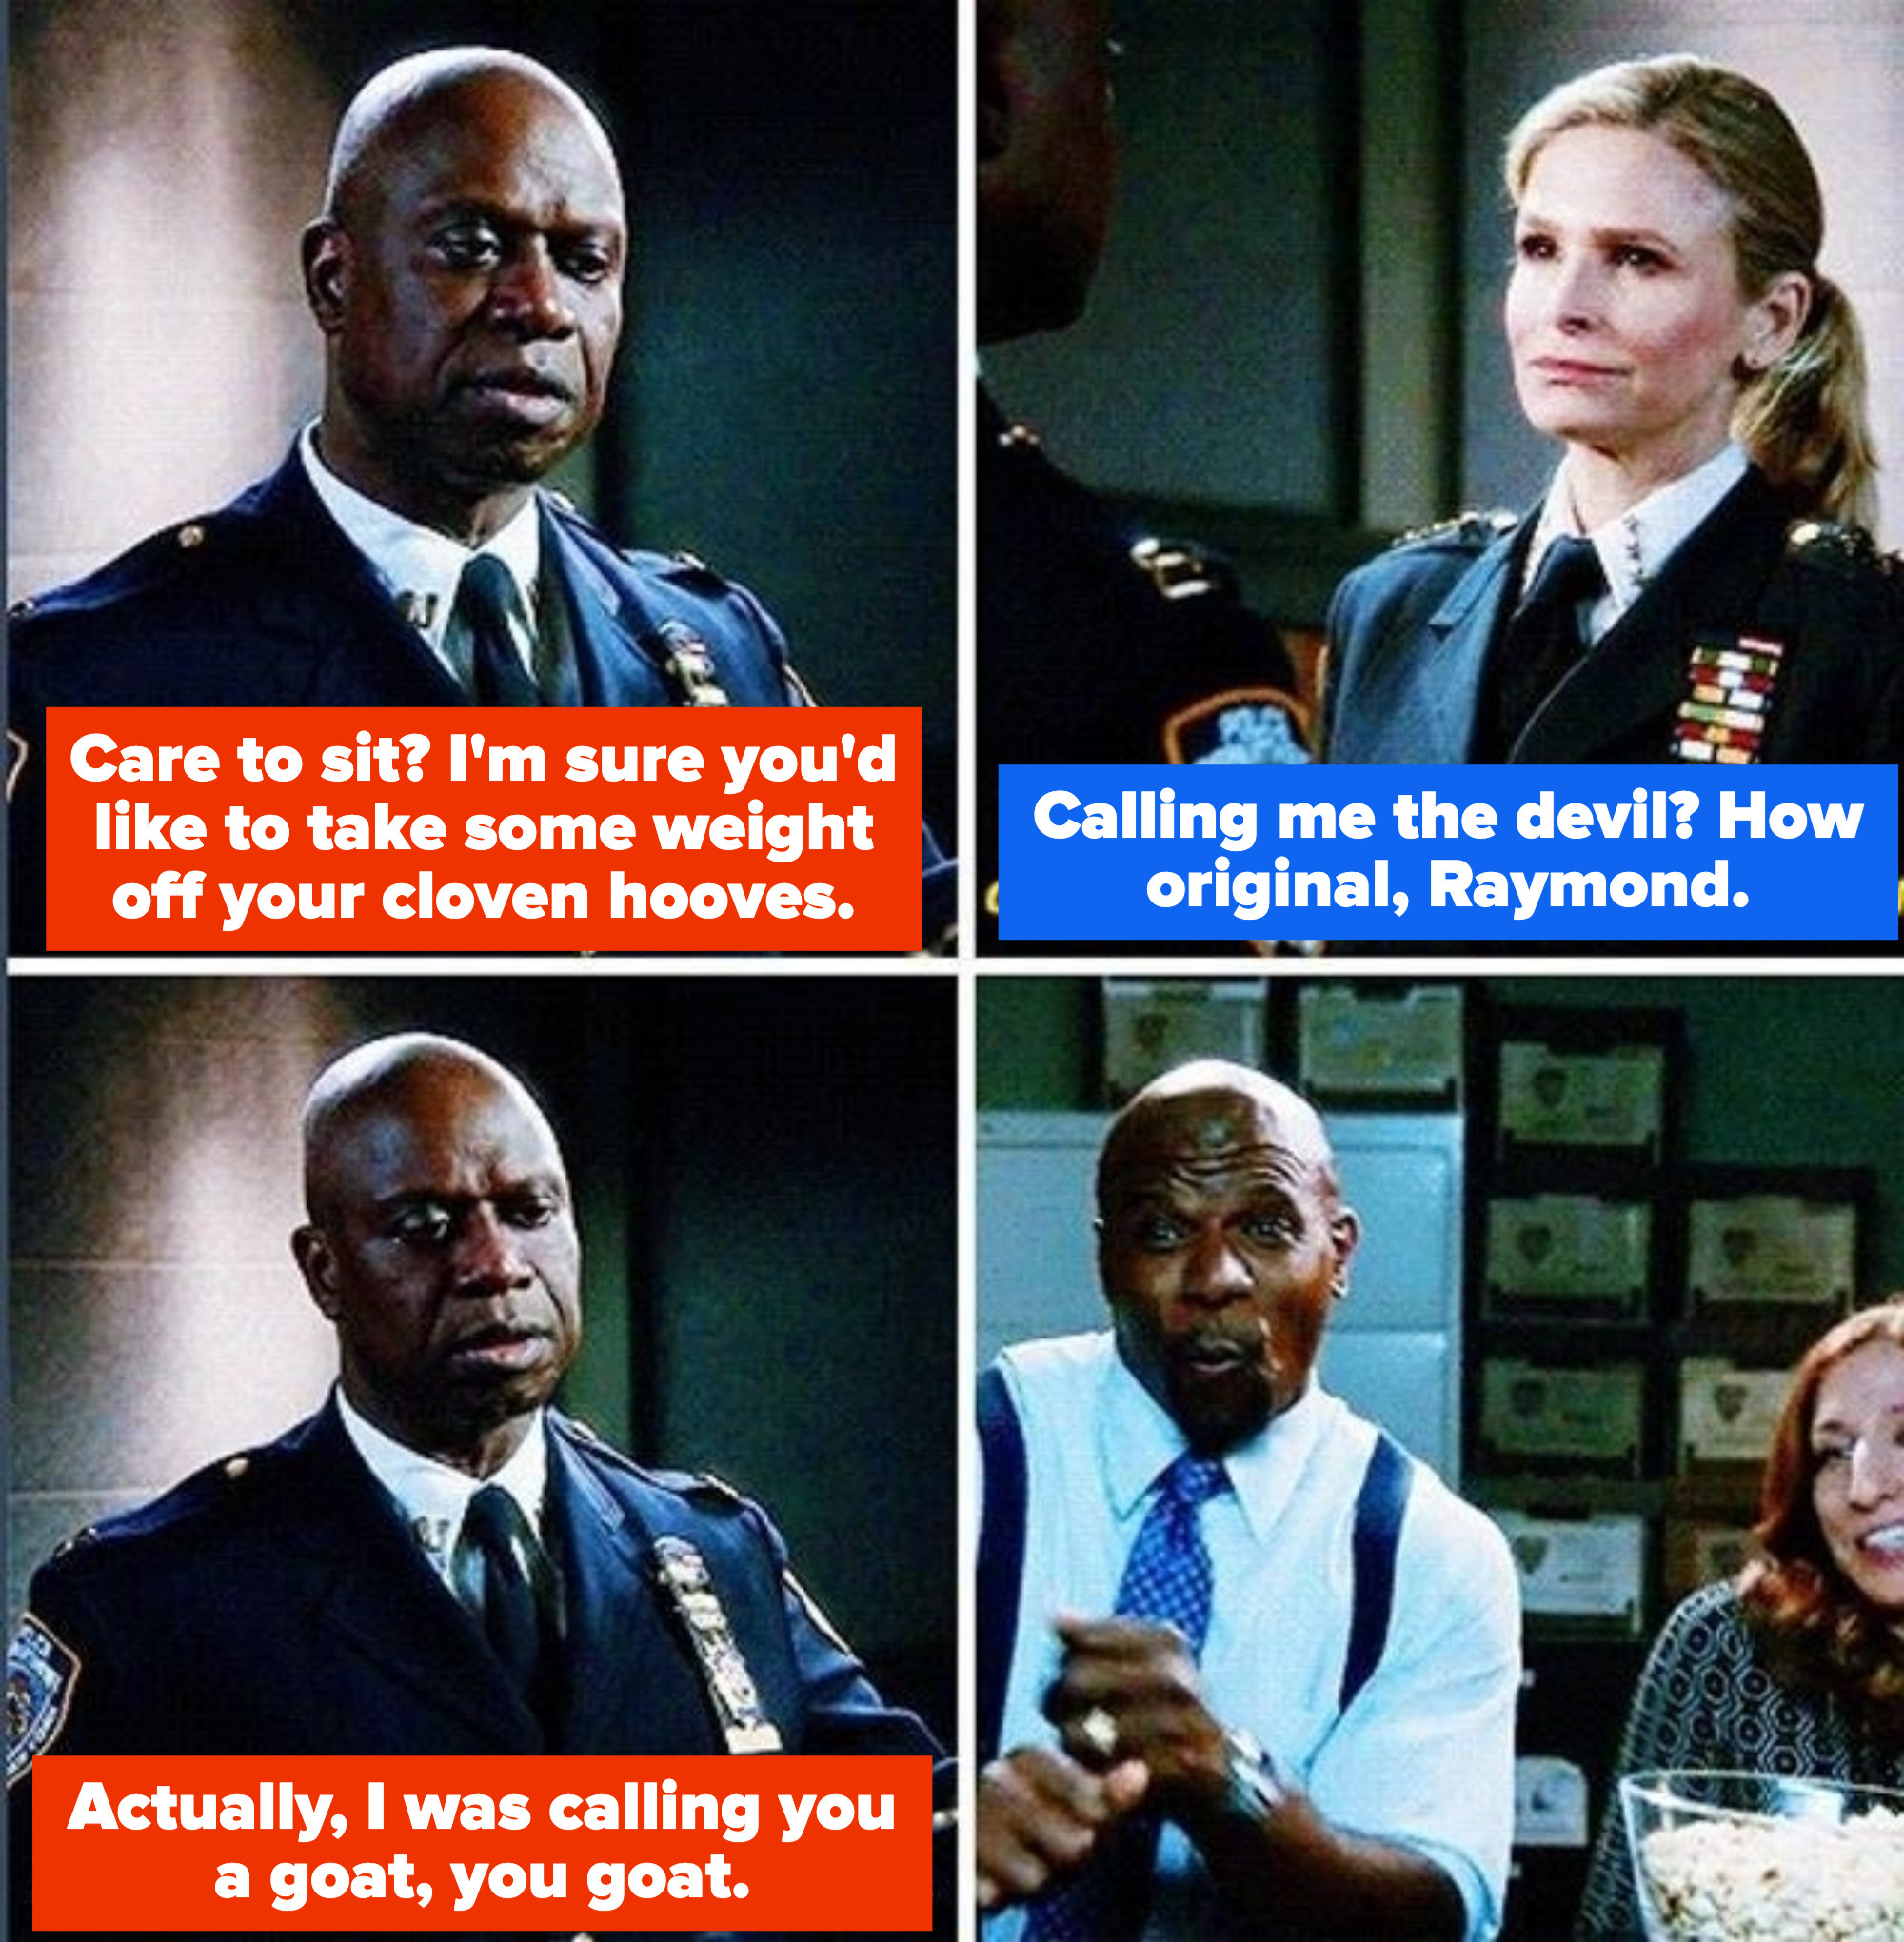 """Holt offers Wuntch a seat to """"take some weight off [her] cloven hooves"""" and Wuntch responds, """"Calling me the devil? How original, Raymond."""" And Holt says, """"Actually, I was calling you a goat, you goat"""""""